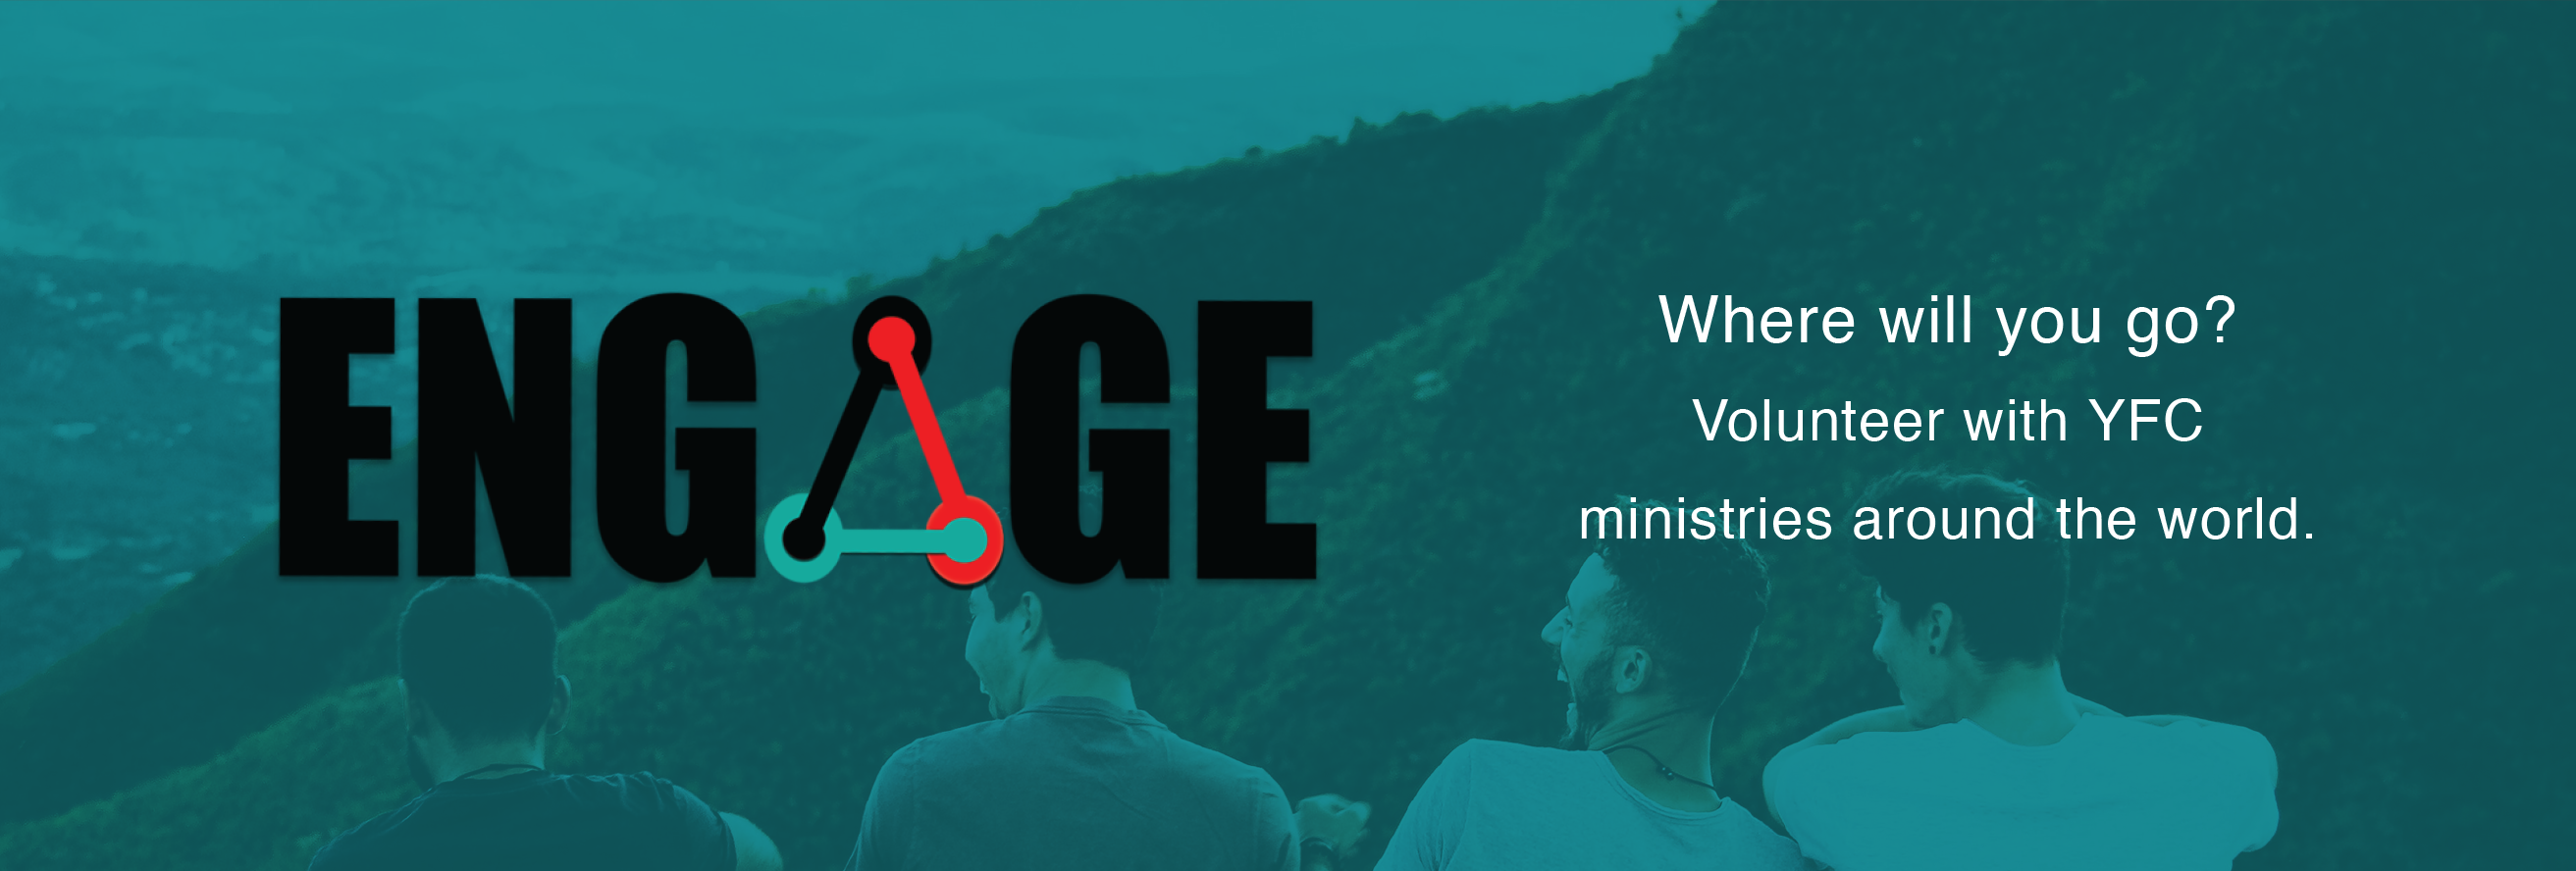 Engage. Where will you go? Volunteer with YFC ministries around the world.